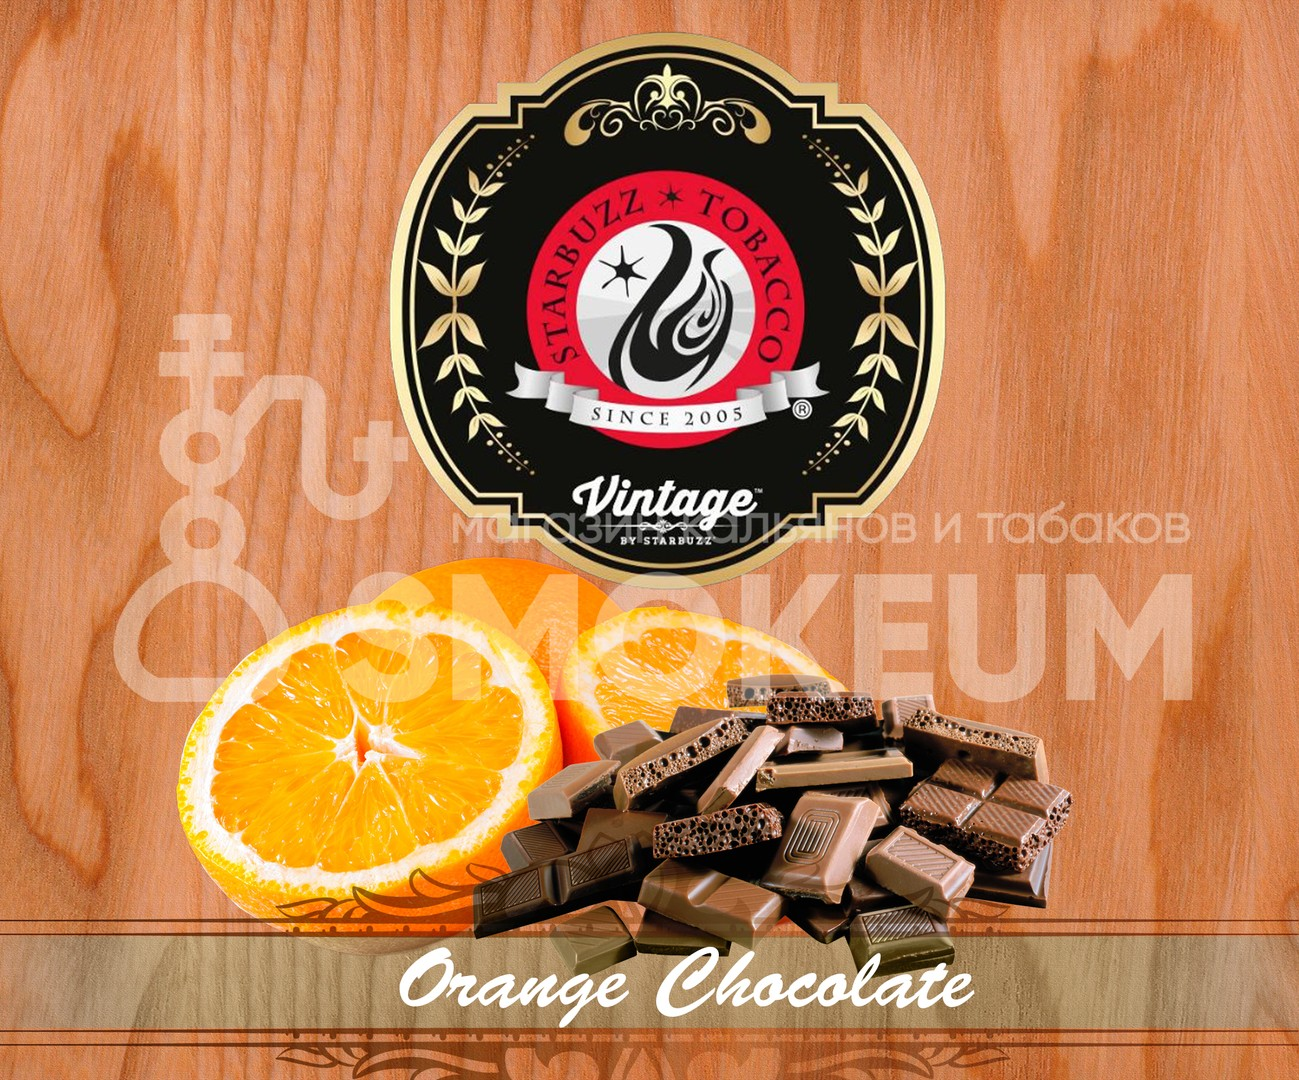 Табак Starbuzz - Vintage Orange Chocolate (Апельсин с Шоколадом) 200 гр